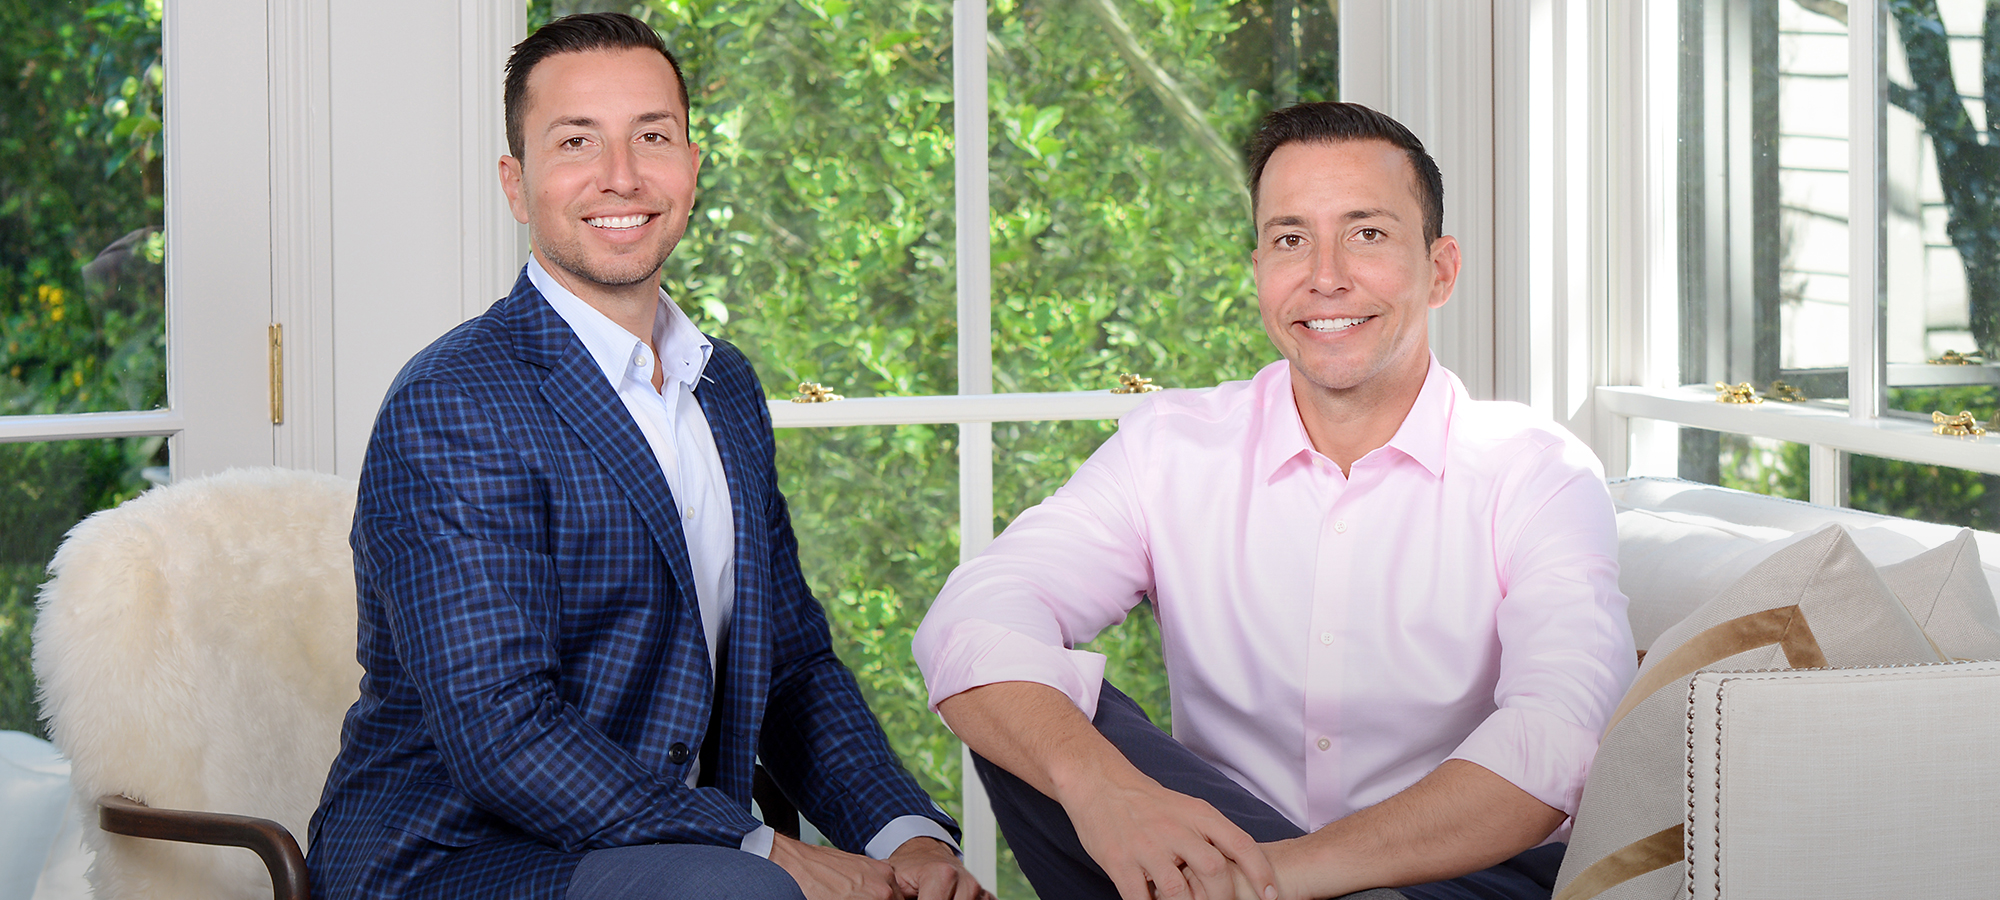 Principals, Chris and Rob Desino, sitting in a sunroom with greenery behind them